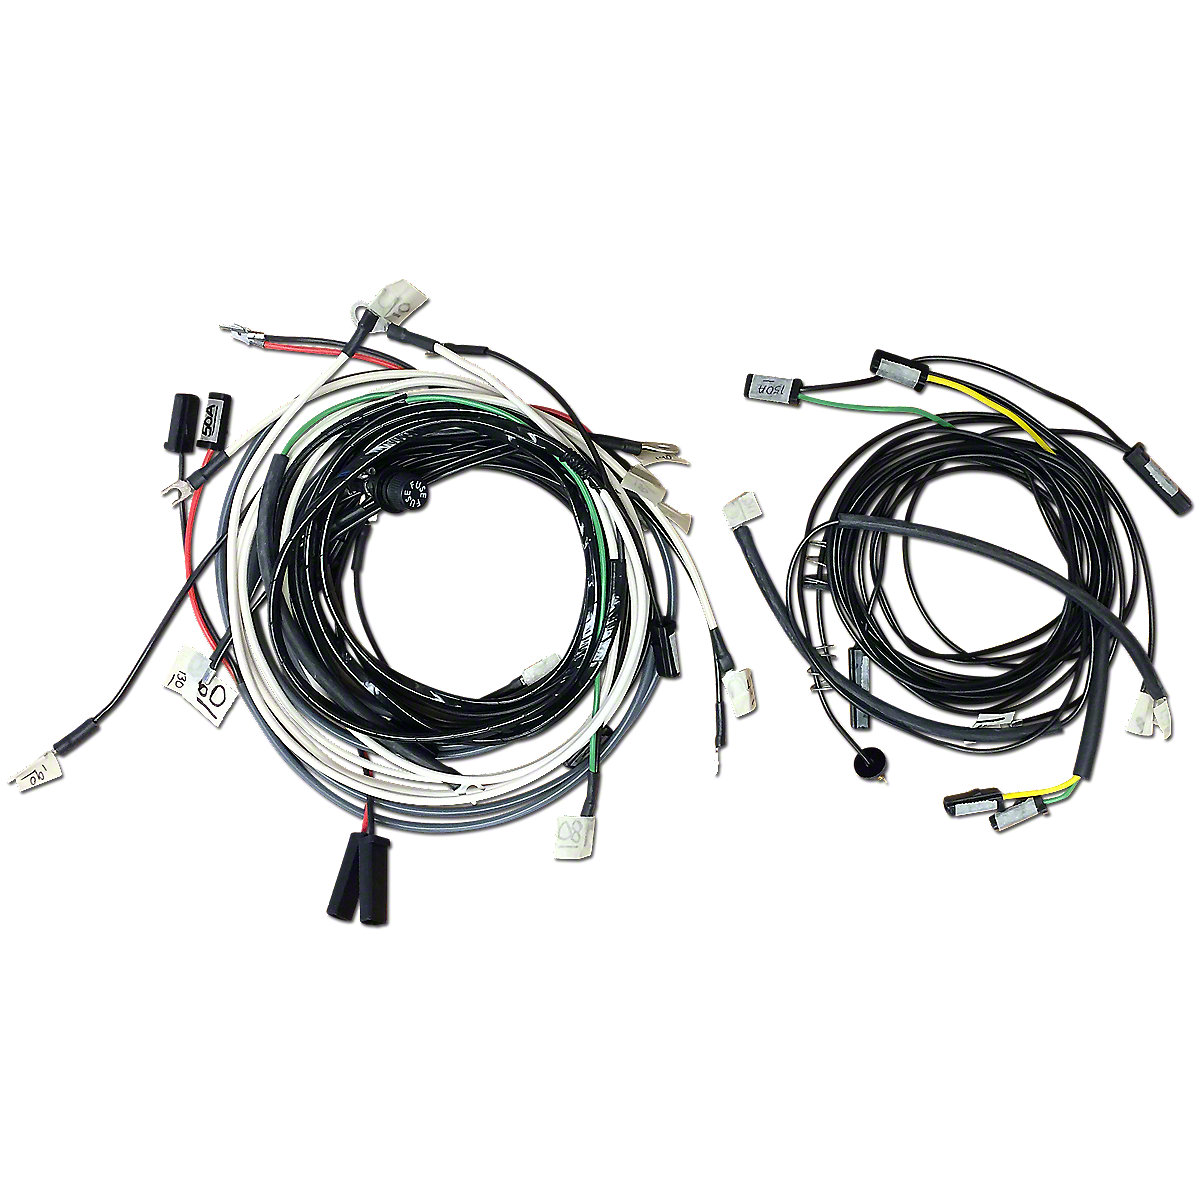 wiring harness kit jds2901